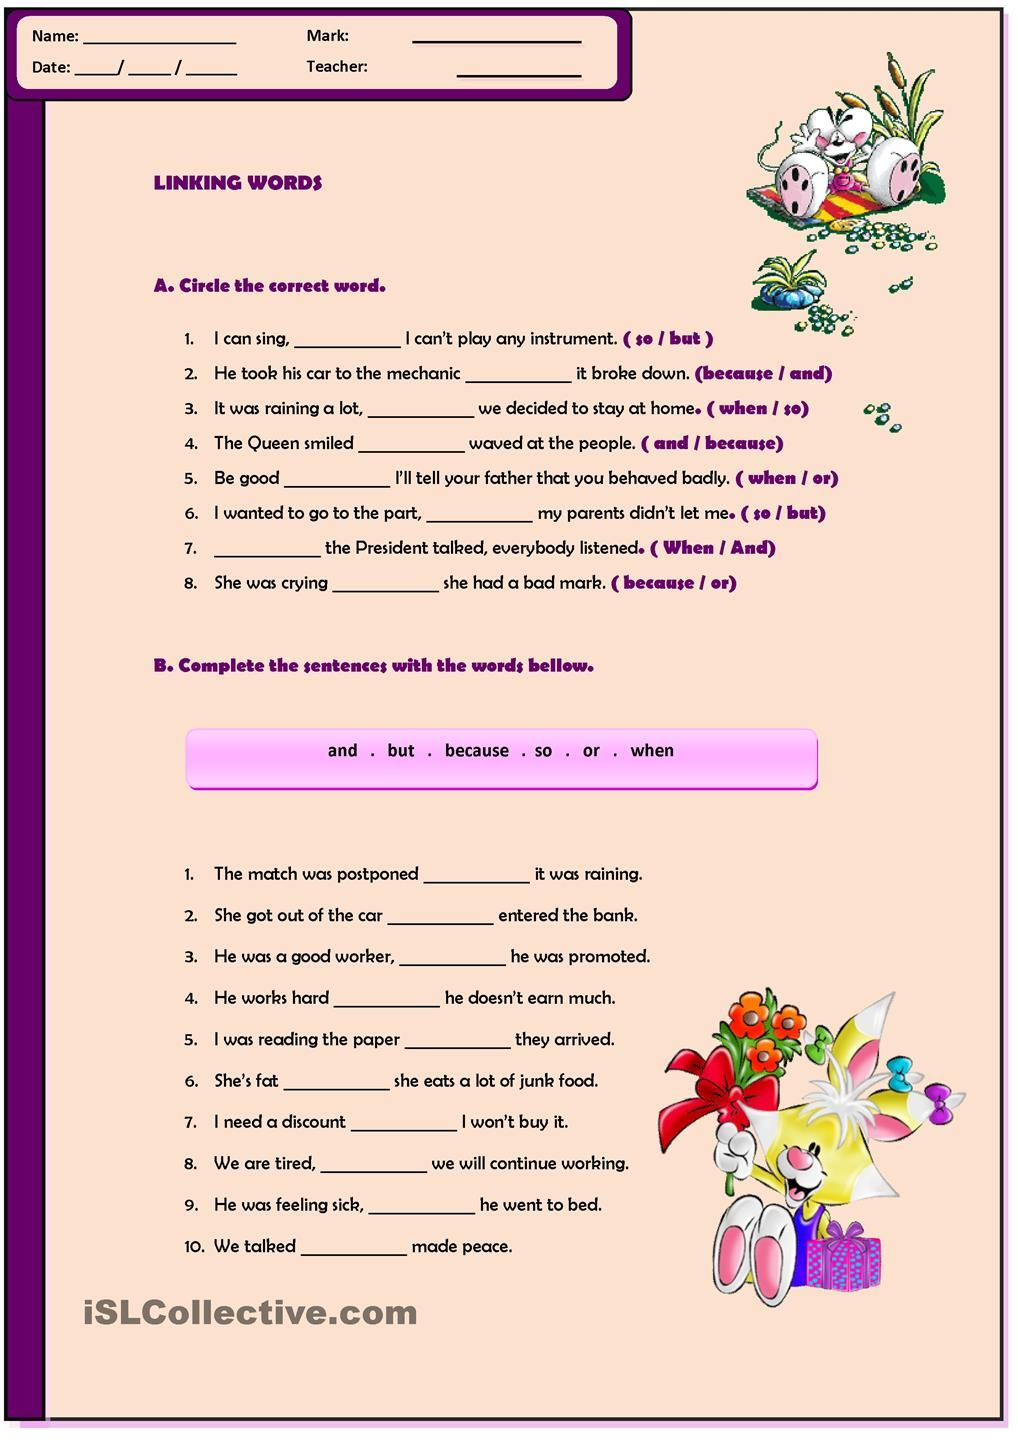 essay linking words exercises English conjunctions: coordination and subordination connectors and linking words exercises coordination and subordination conjunctions in english.